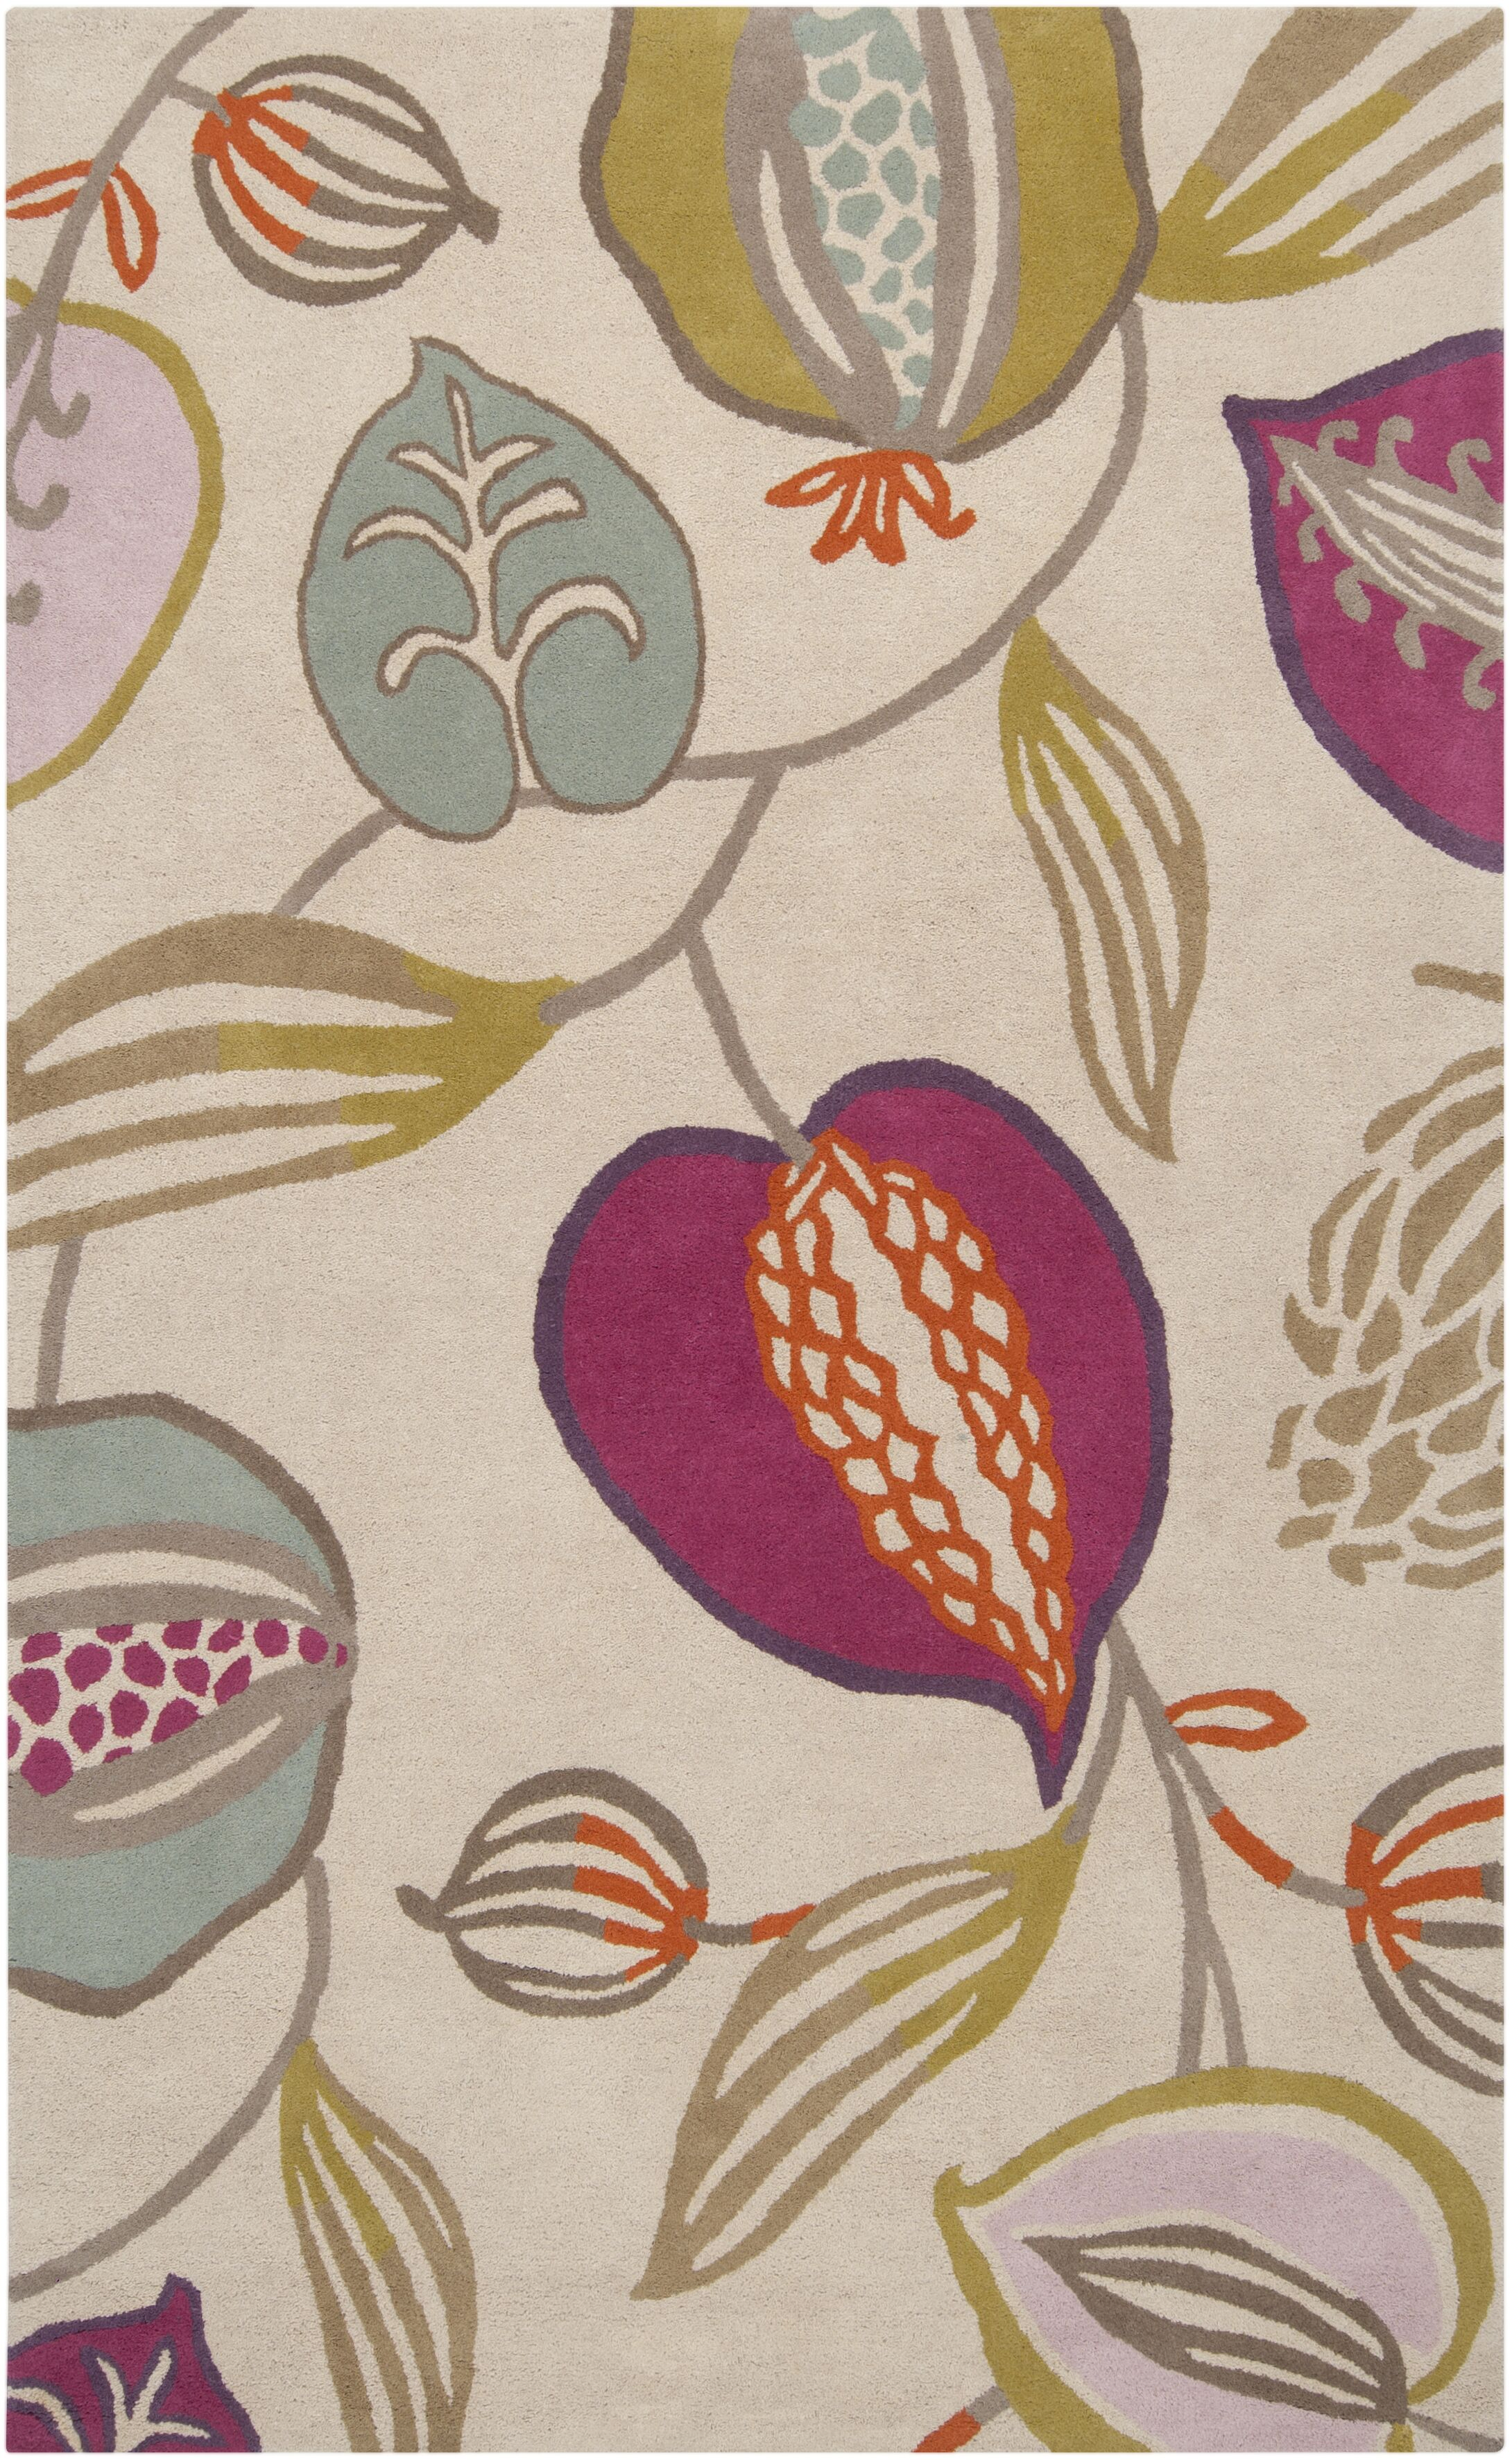 Harlequin Cobble Stone Ivory Floral Area Rug Rug Size: Rectangle 5' x 8'